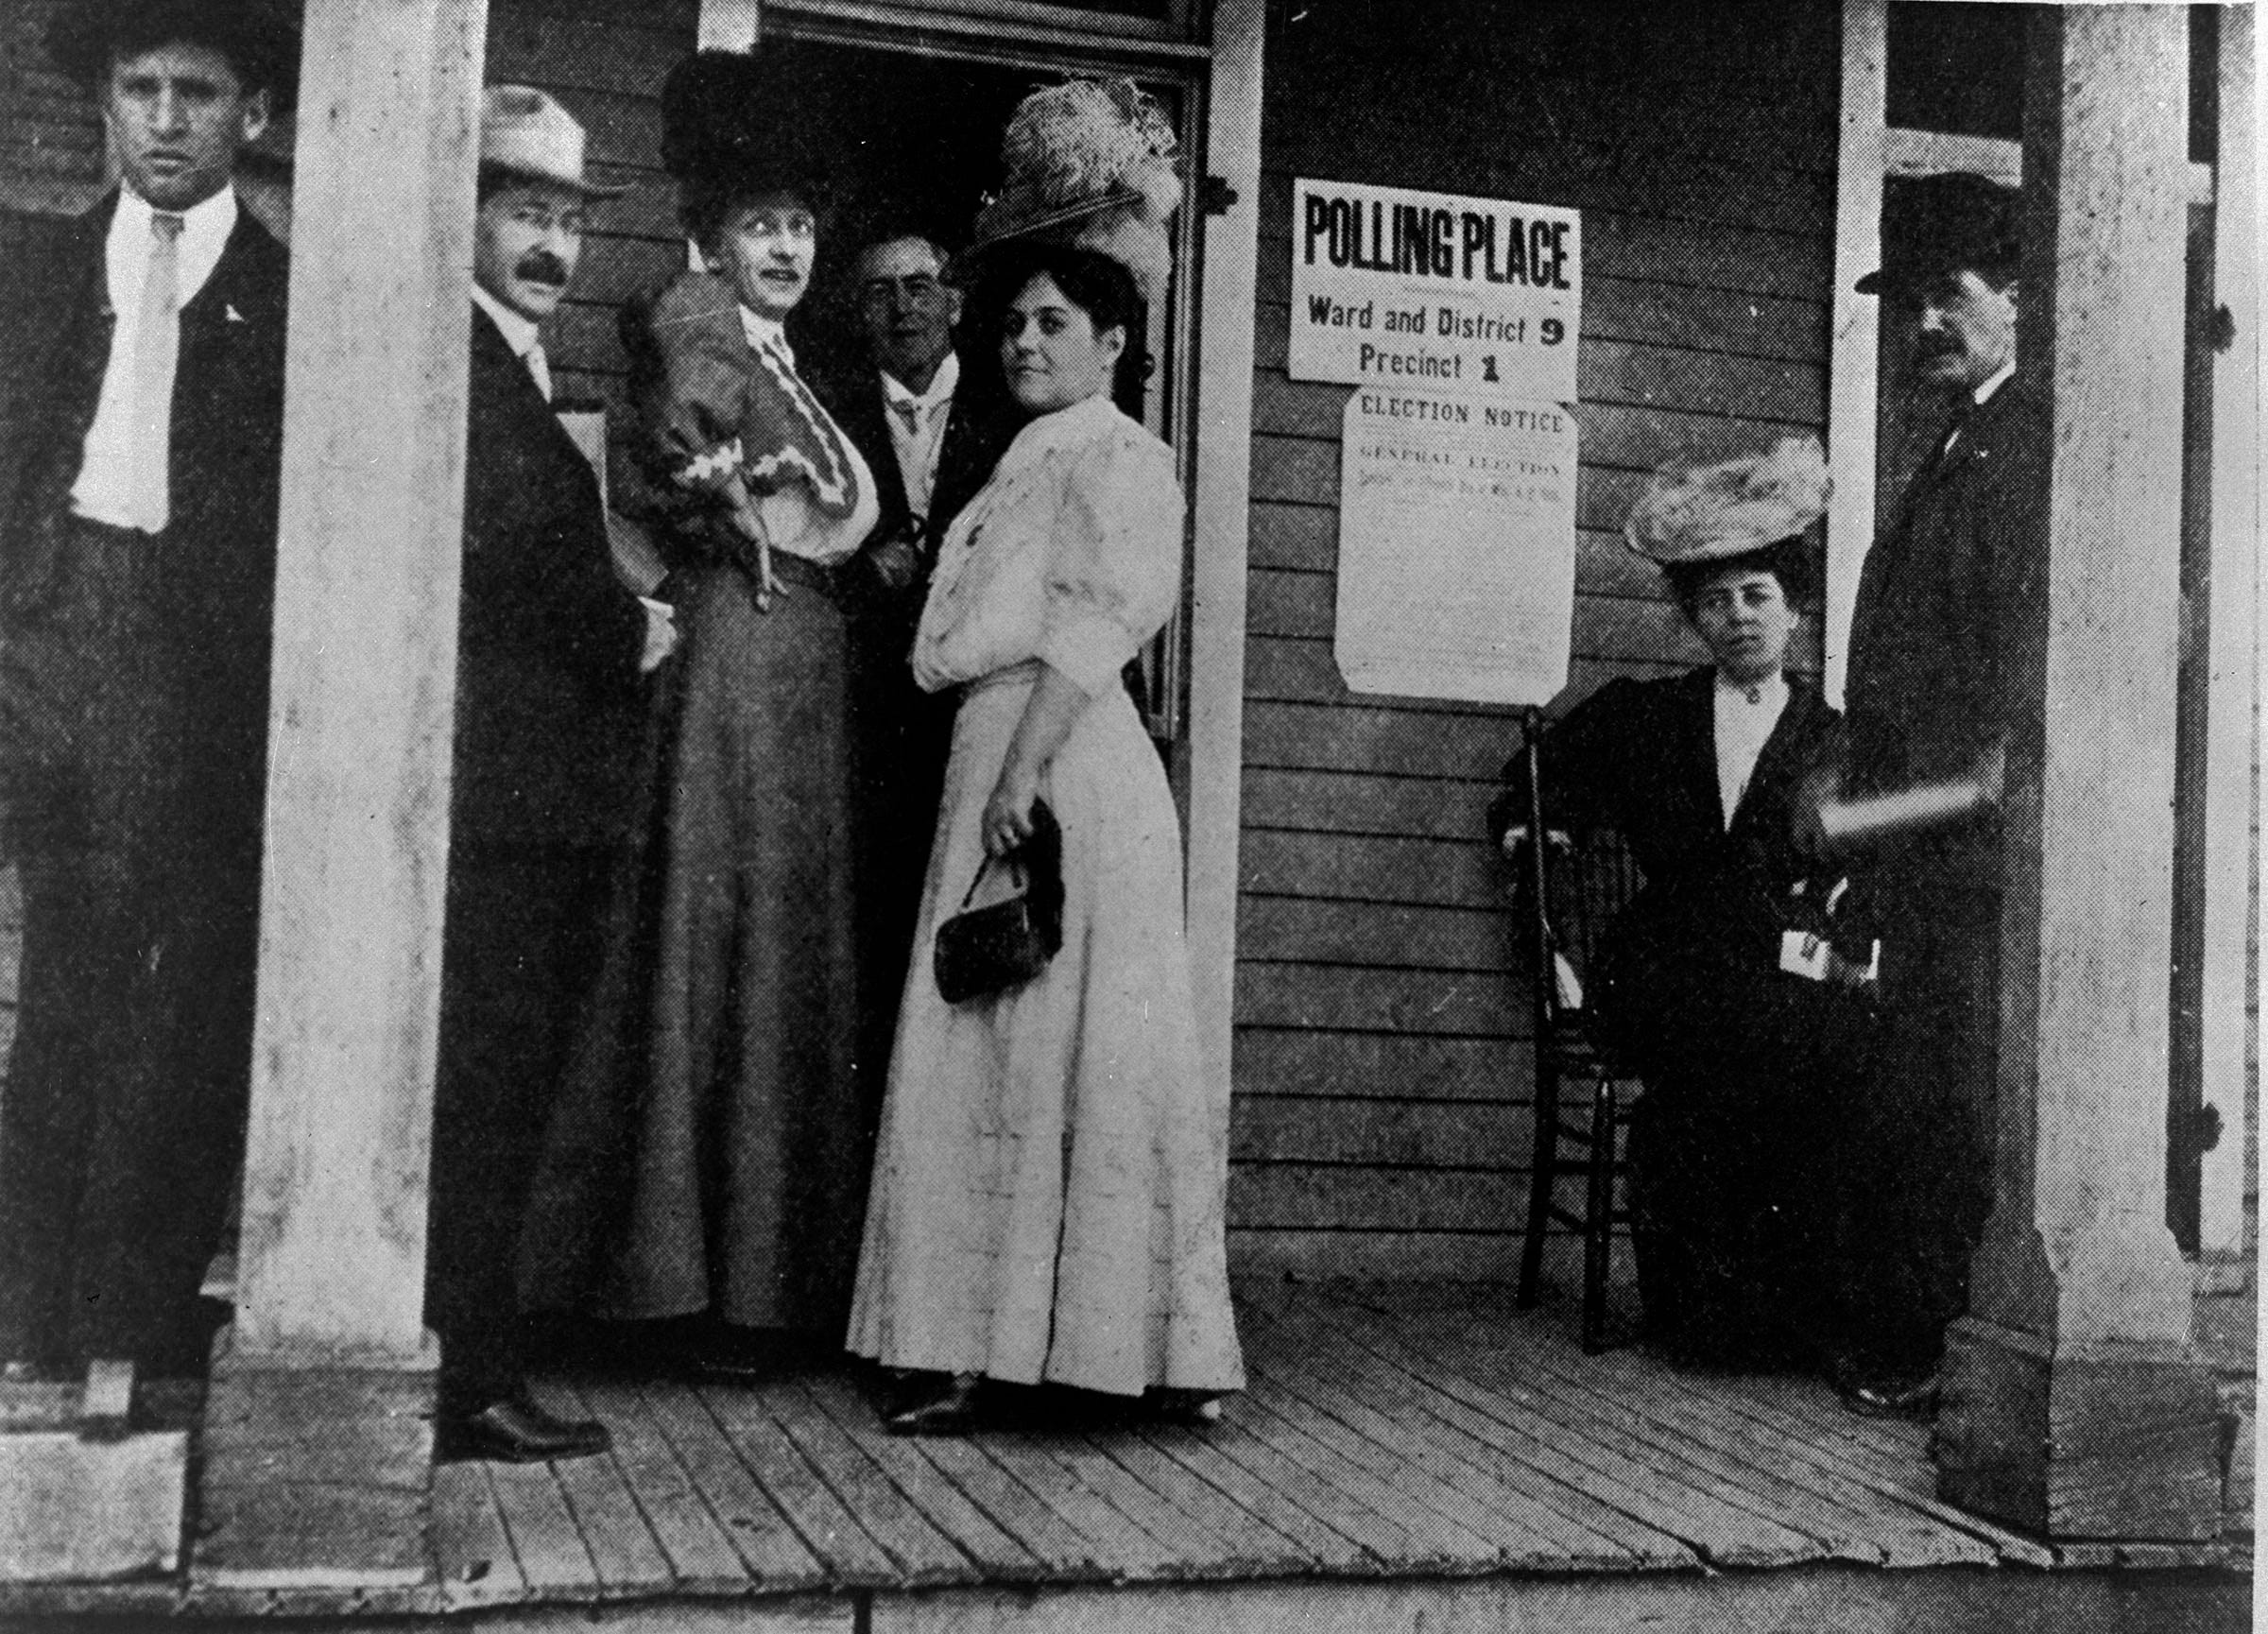 Women stand outside of a Colorado polling place in this undated historic photo.